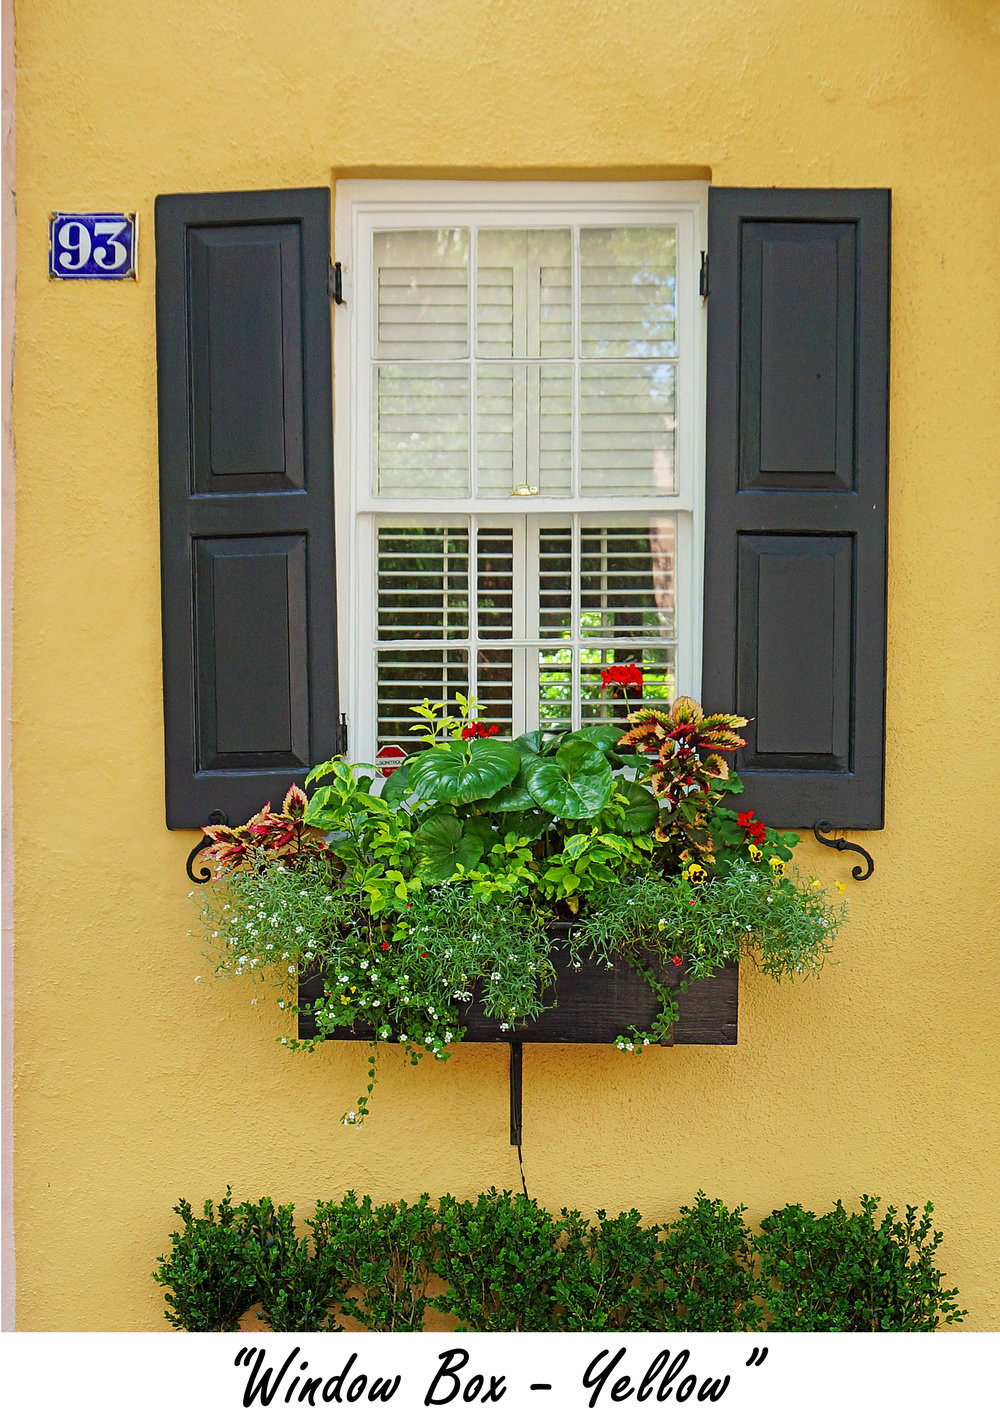 windowbox Yellow.jpg